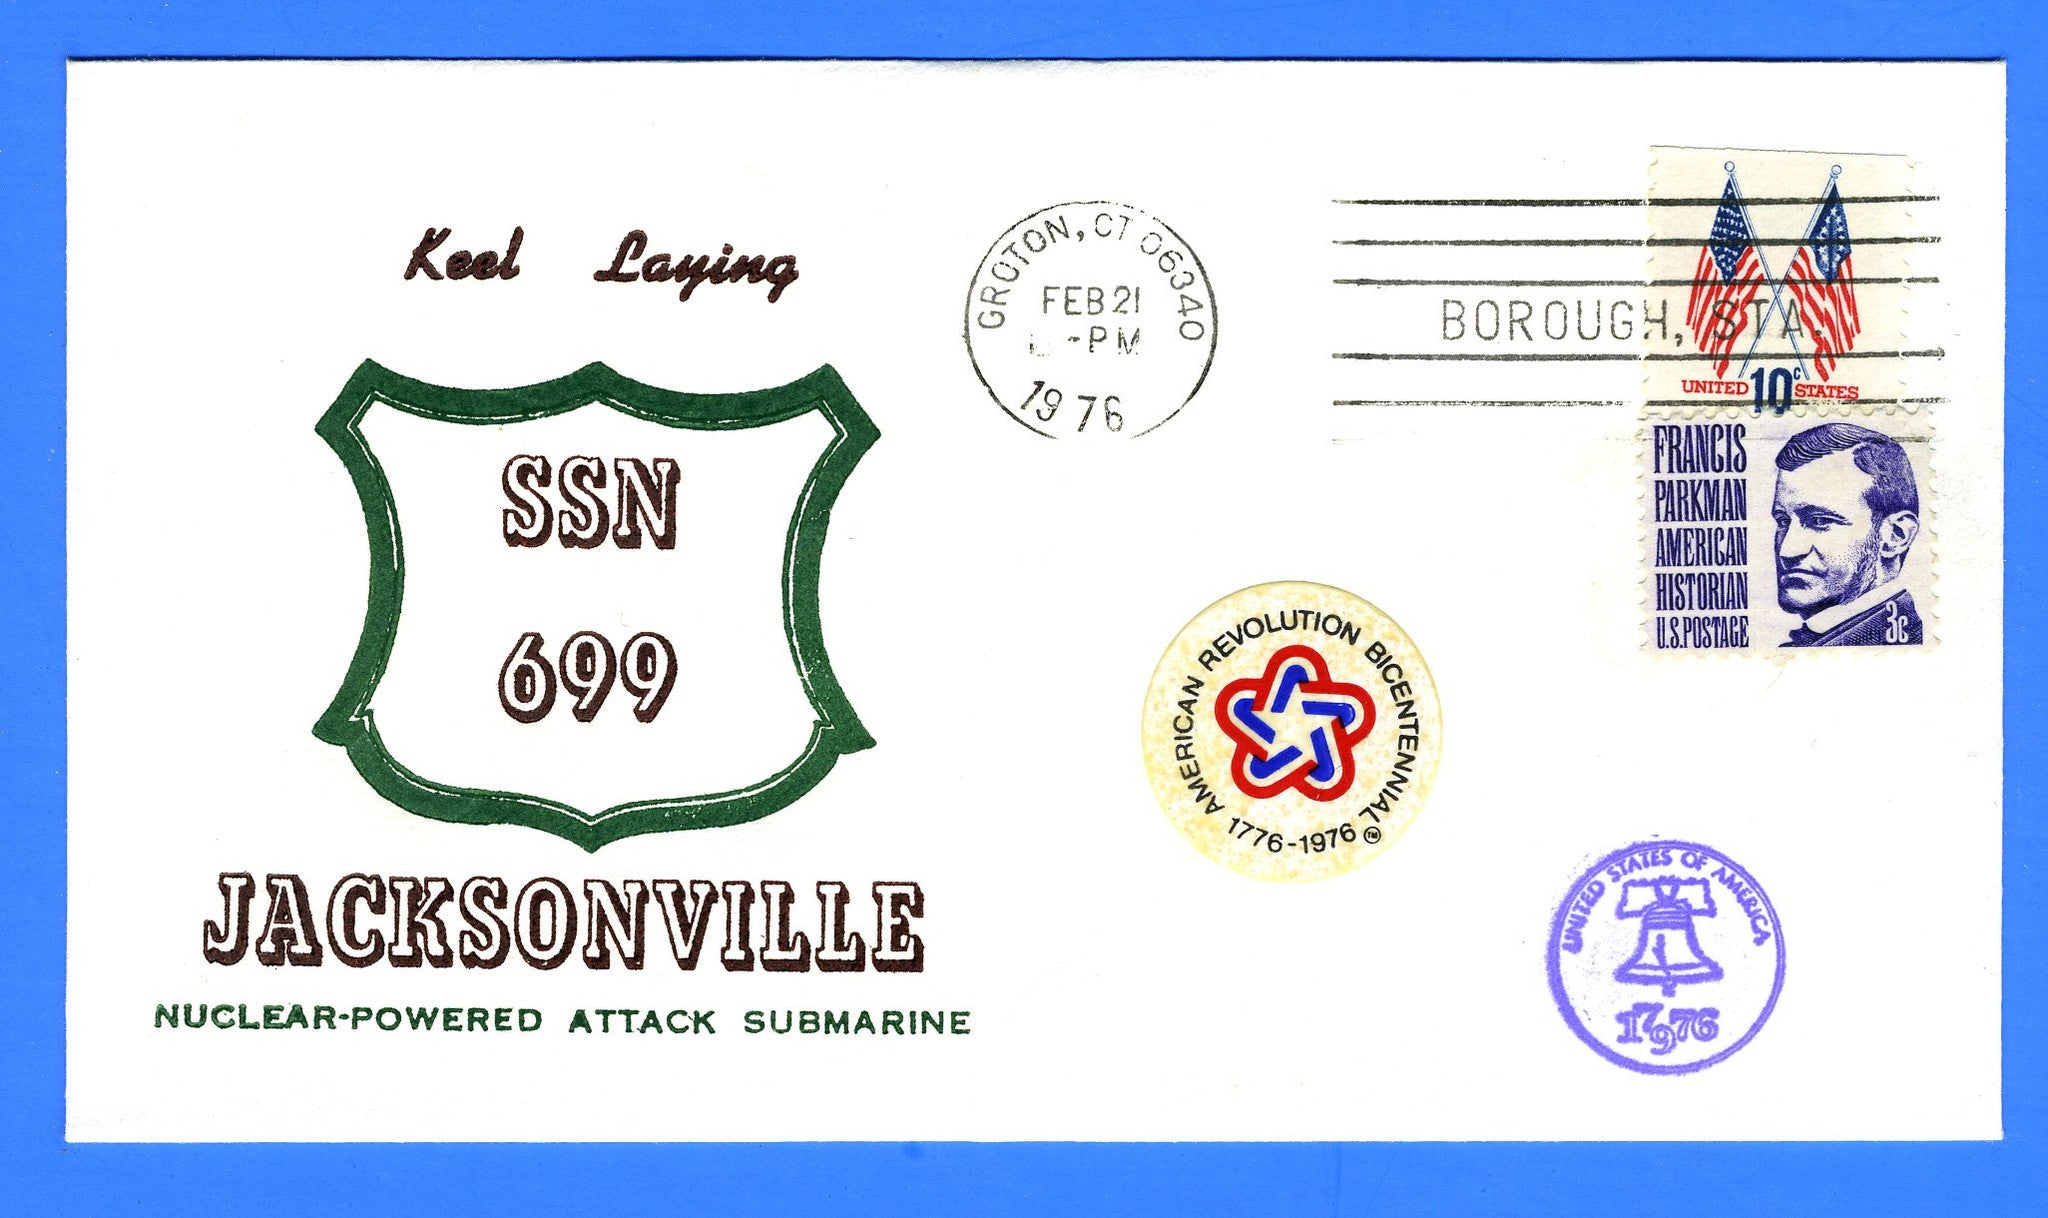 USS Jacksonville SSN-699 Keel Laying February 21, 1976 - Cachet by Admiral Byrd Chapter No. 11, USCS